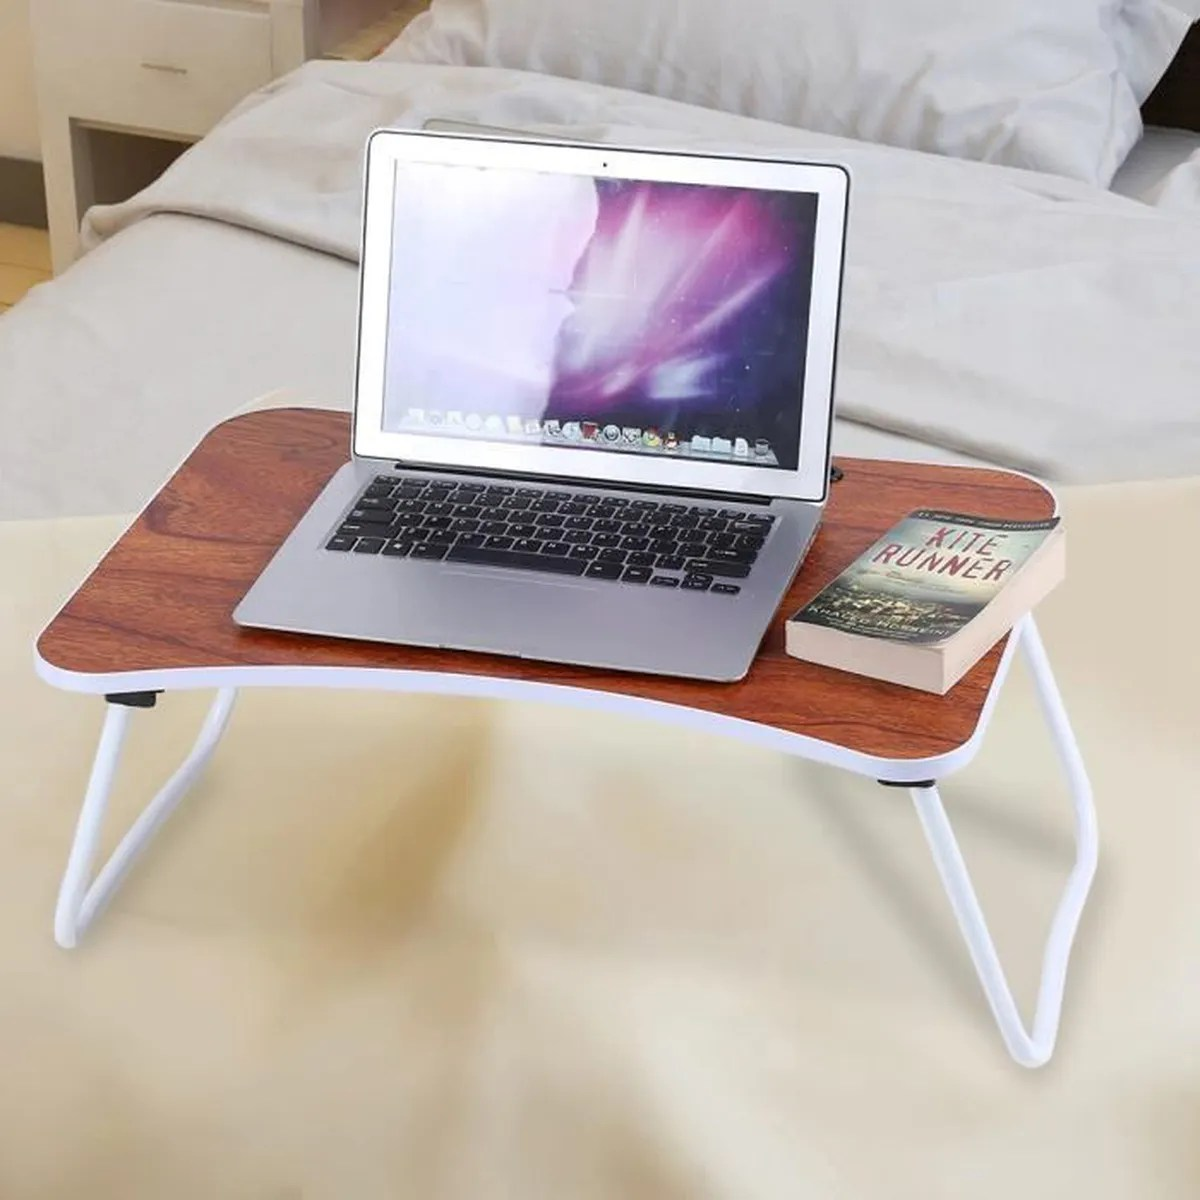 Tablette Bureau Support Pc Et Tablette Bureau Table De Lit Lapto Plateau